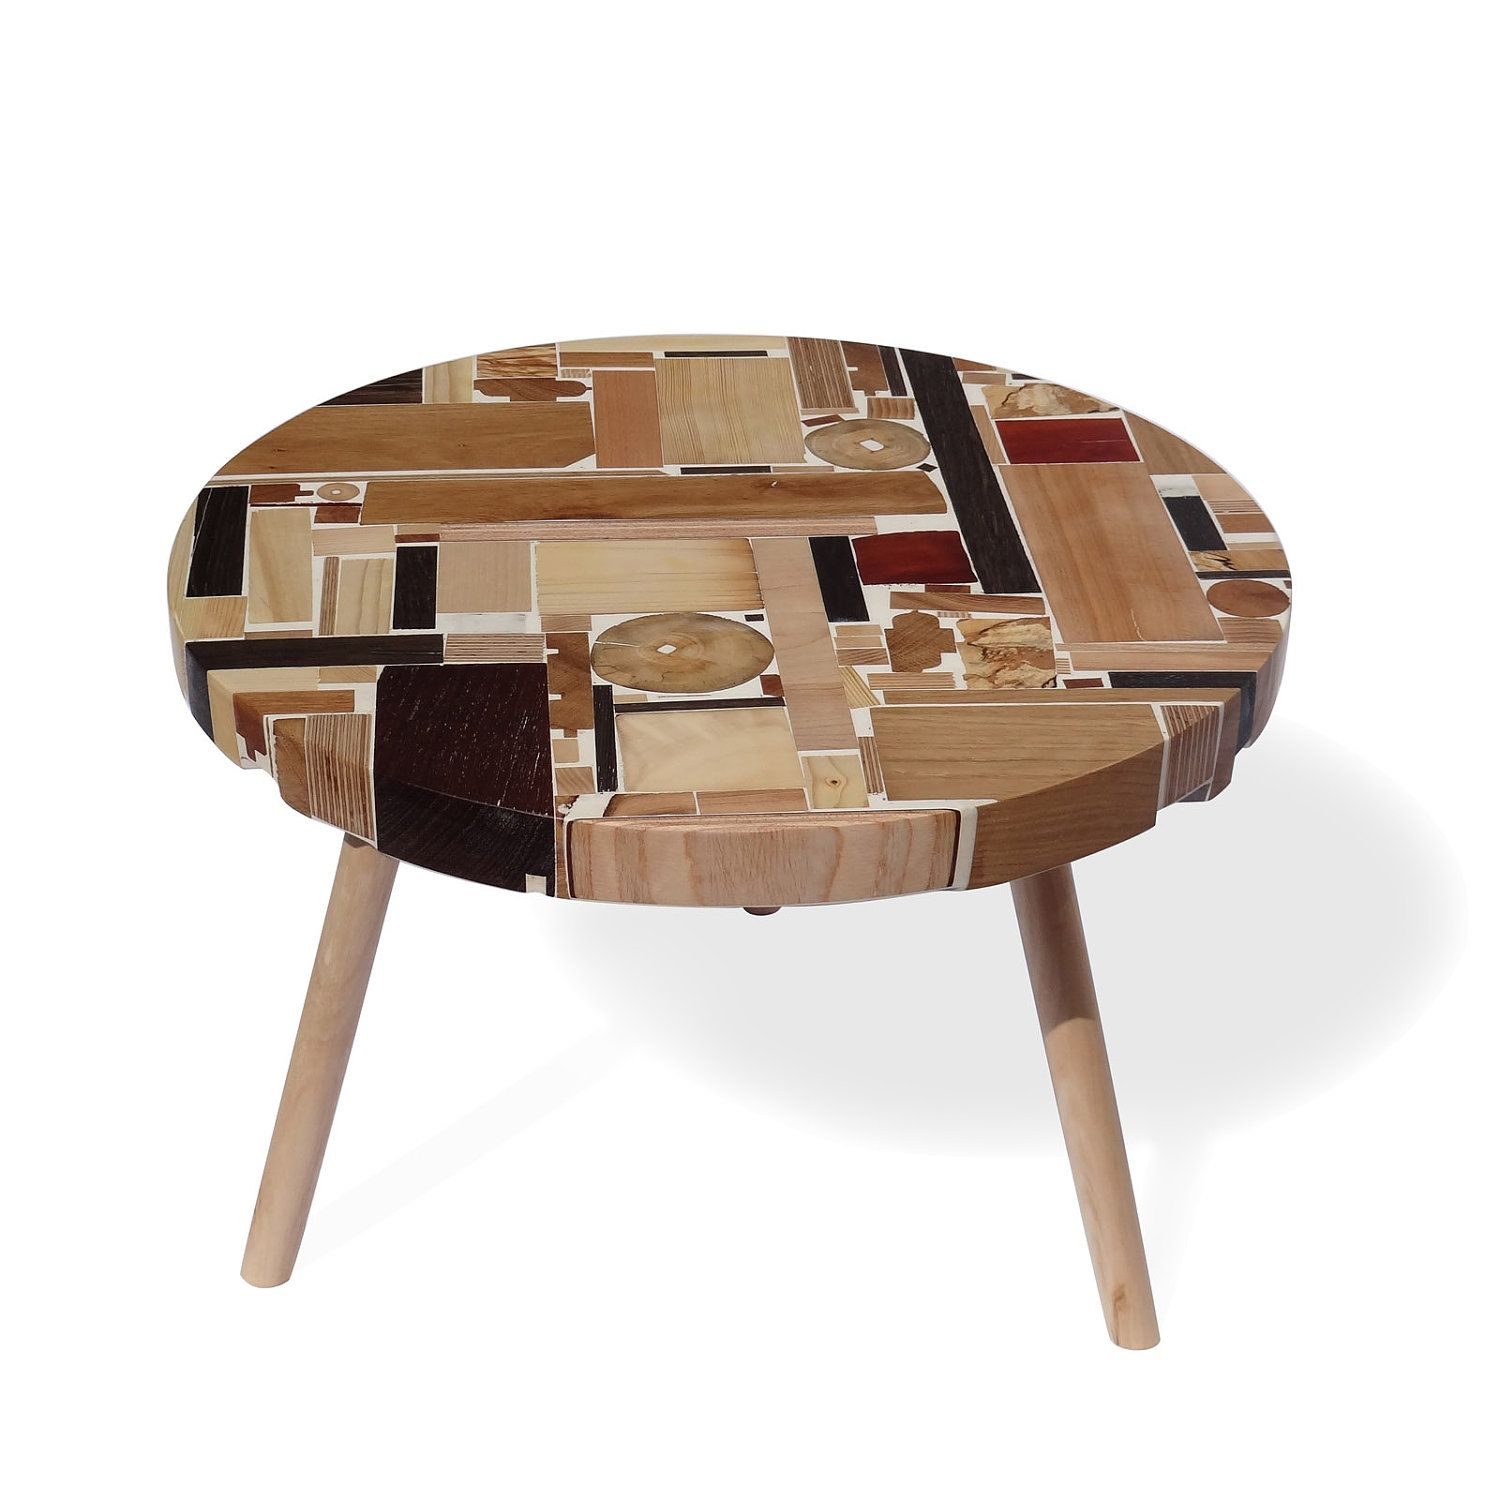 Wooden Coffee table made of wood pieces remnants from the